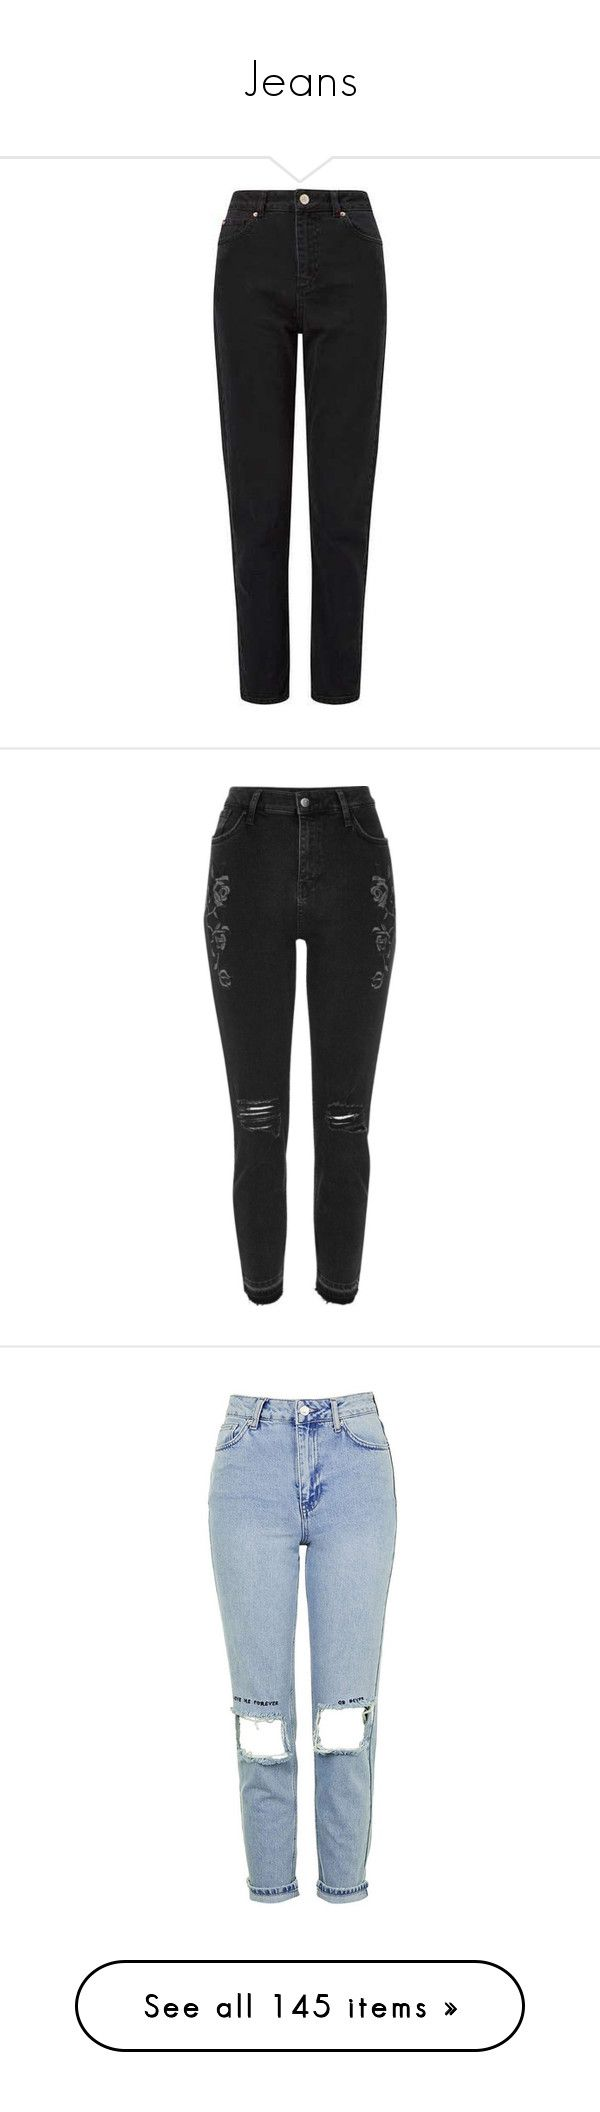 """Jeans"" by tacoxcat ❤ liked on Polyvore featuring jeans, miss selfridge, black wash jeans, miss selfridge jeans, pants, bottoms, denim, black, sale and women"